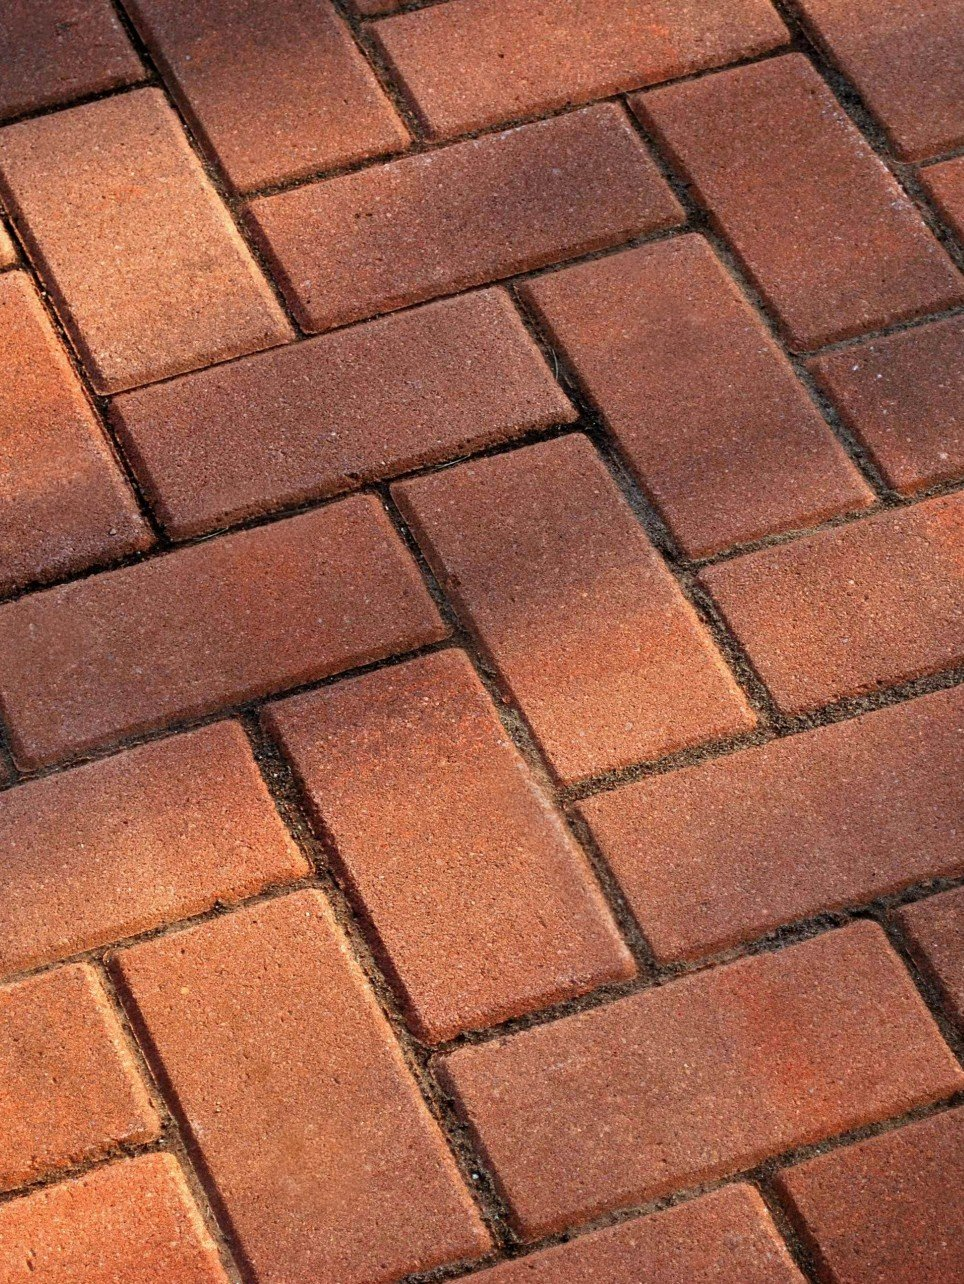 Block Paving Companies Droitwich Spa